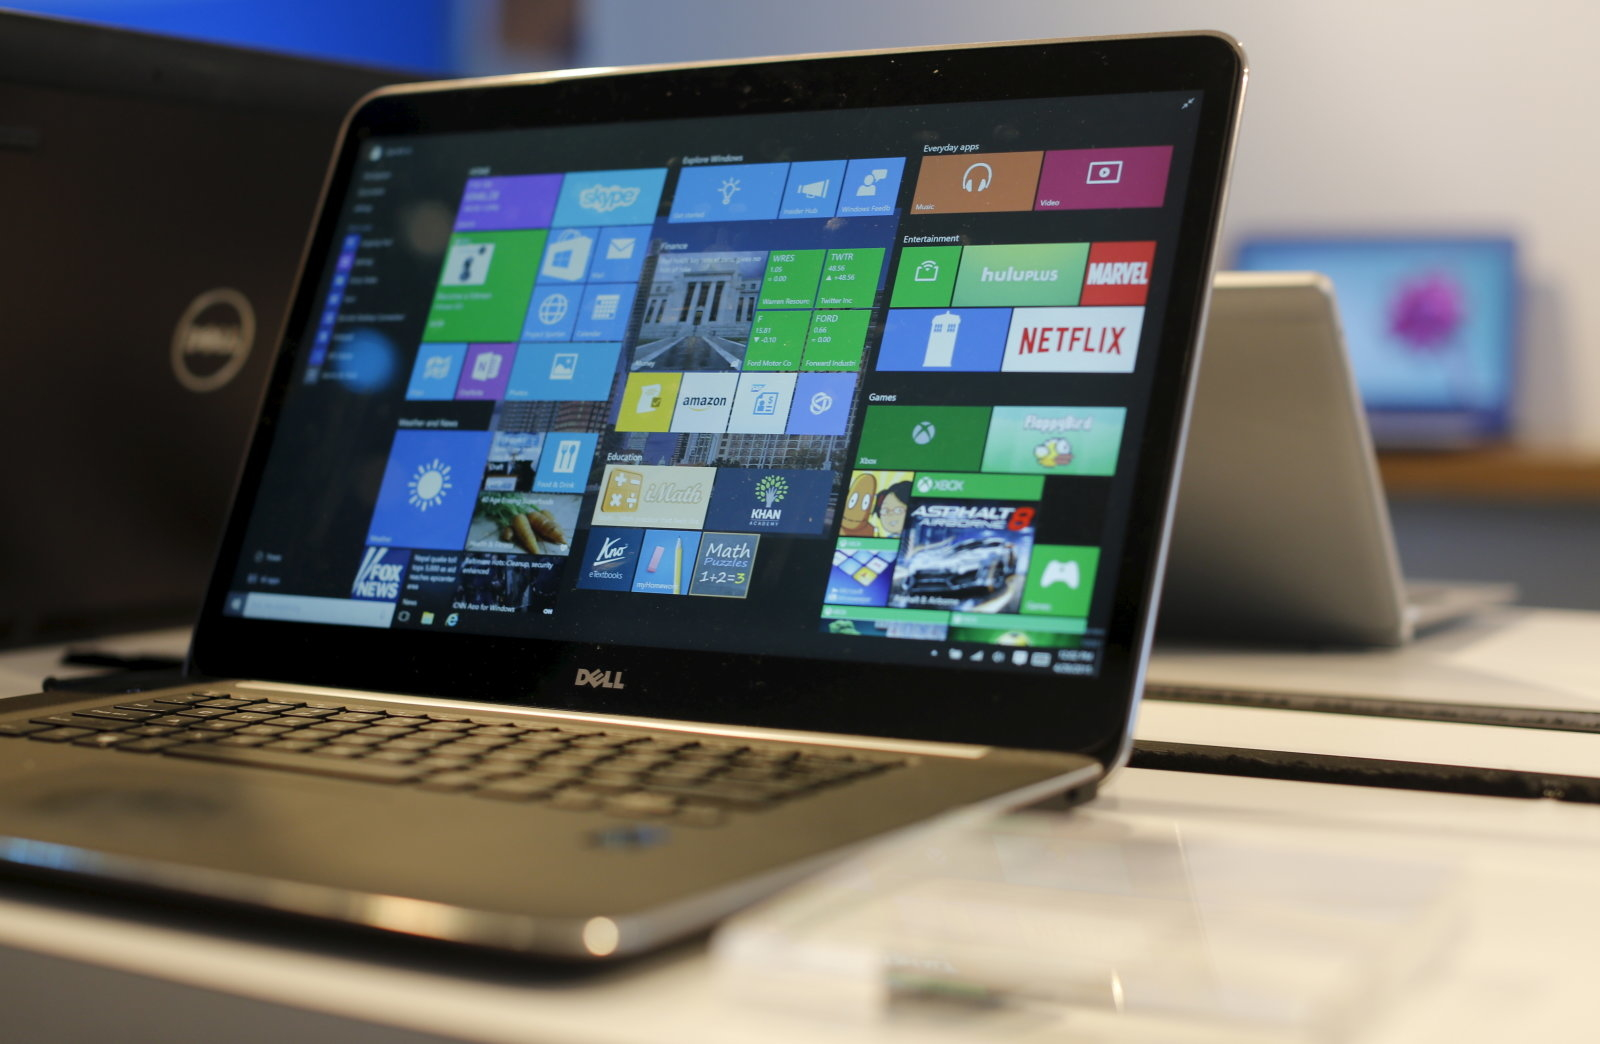 A laptop computer featuring Windows 10 is seen on display at Microsoft Build in San Francisco, California April 29, 2015. REUTERS/Robert Galbraith